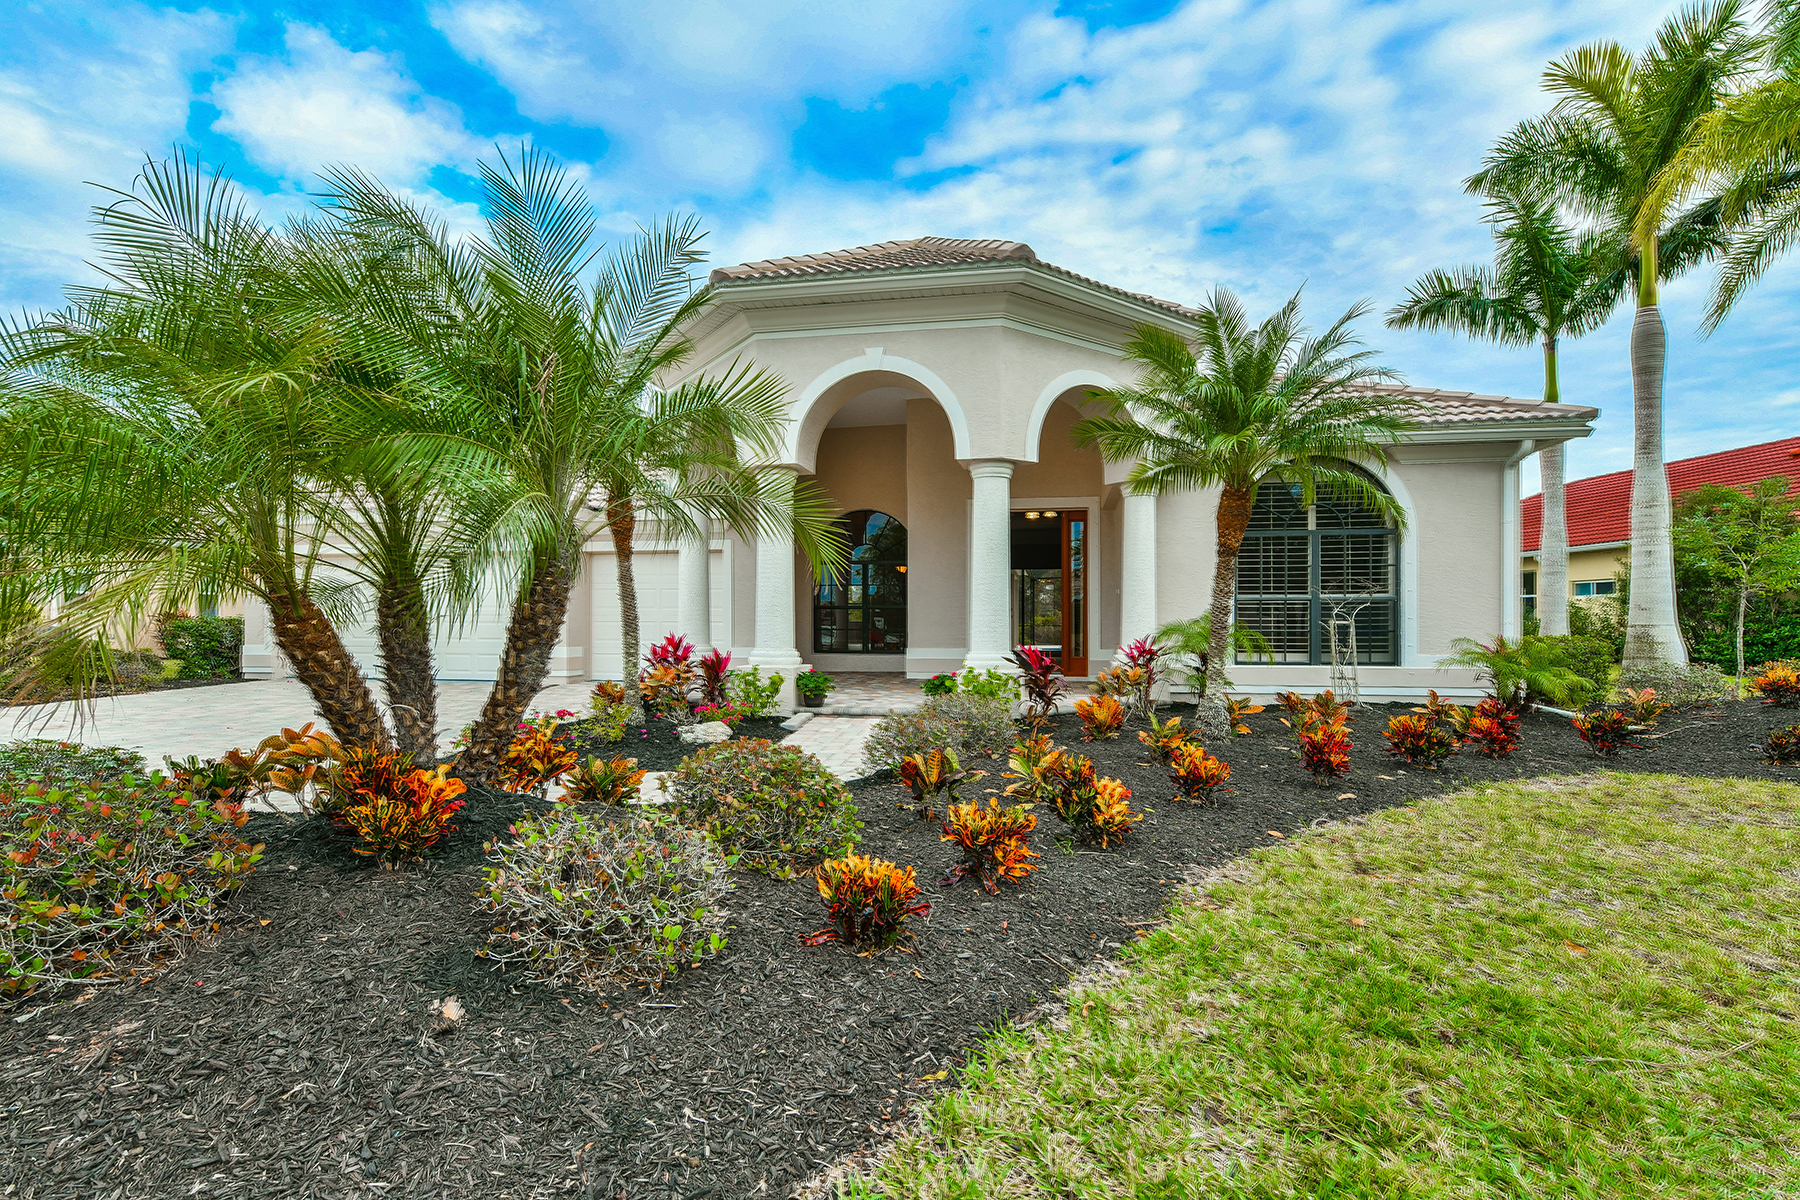 Villa per Vendita alle ore WOODLANDS AT RIVENDELL 986 Scherer Way, Osprey, Florida, 34229 Stati Uniti